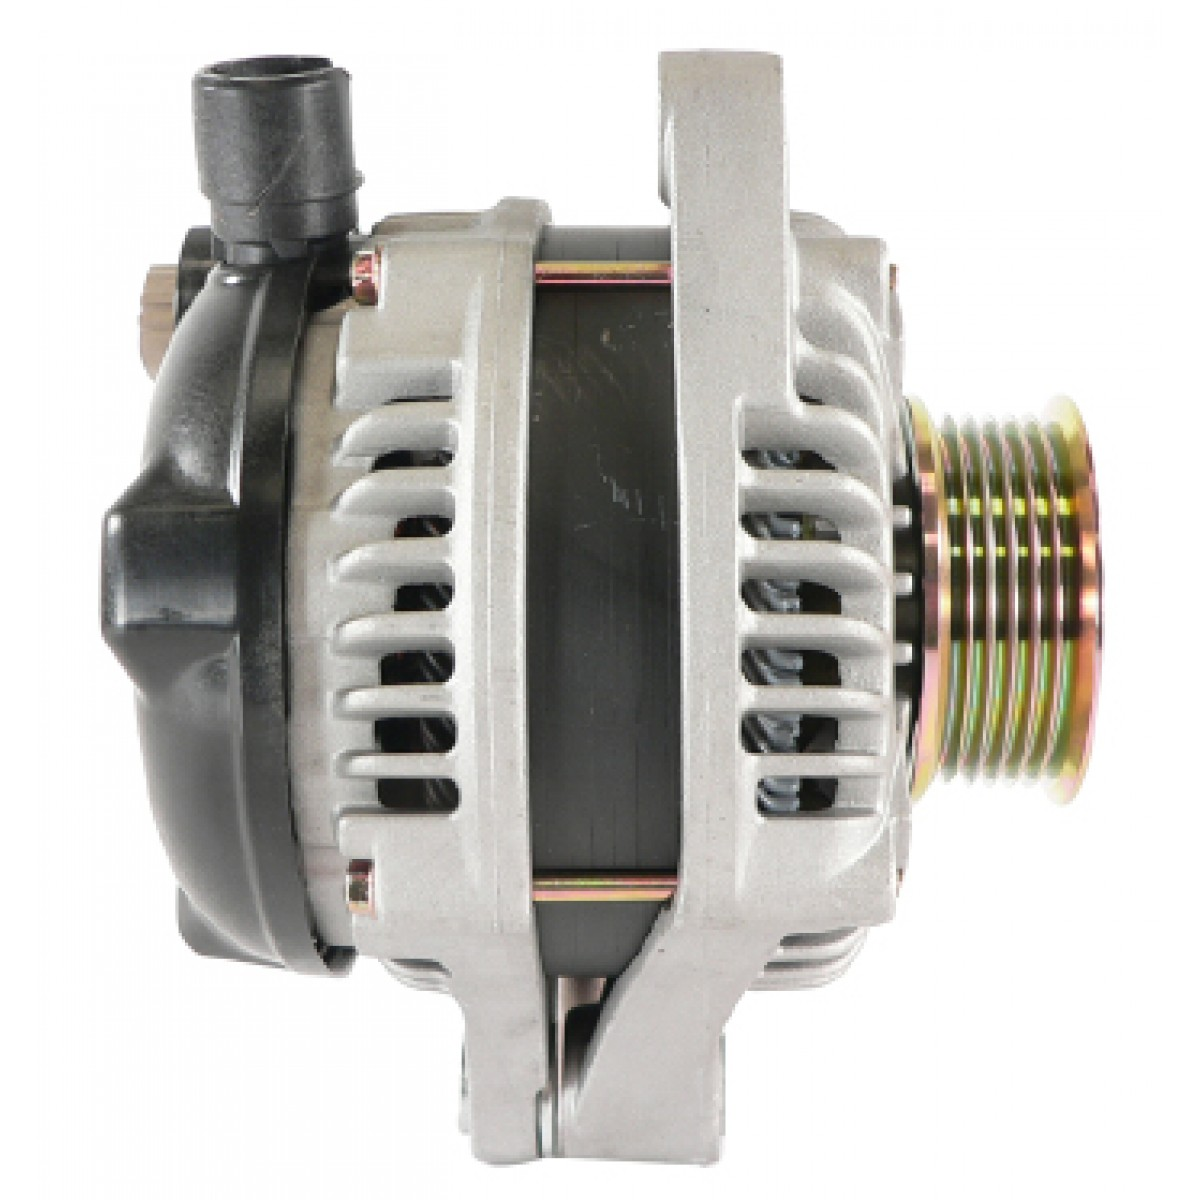 New DENSO Alternator For ACURA MDX, RL, TL 2005-2009